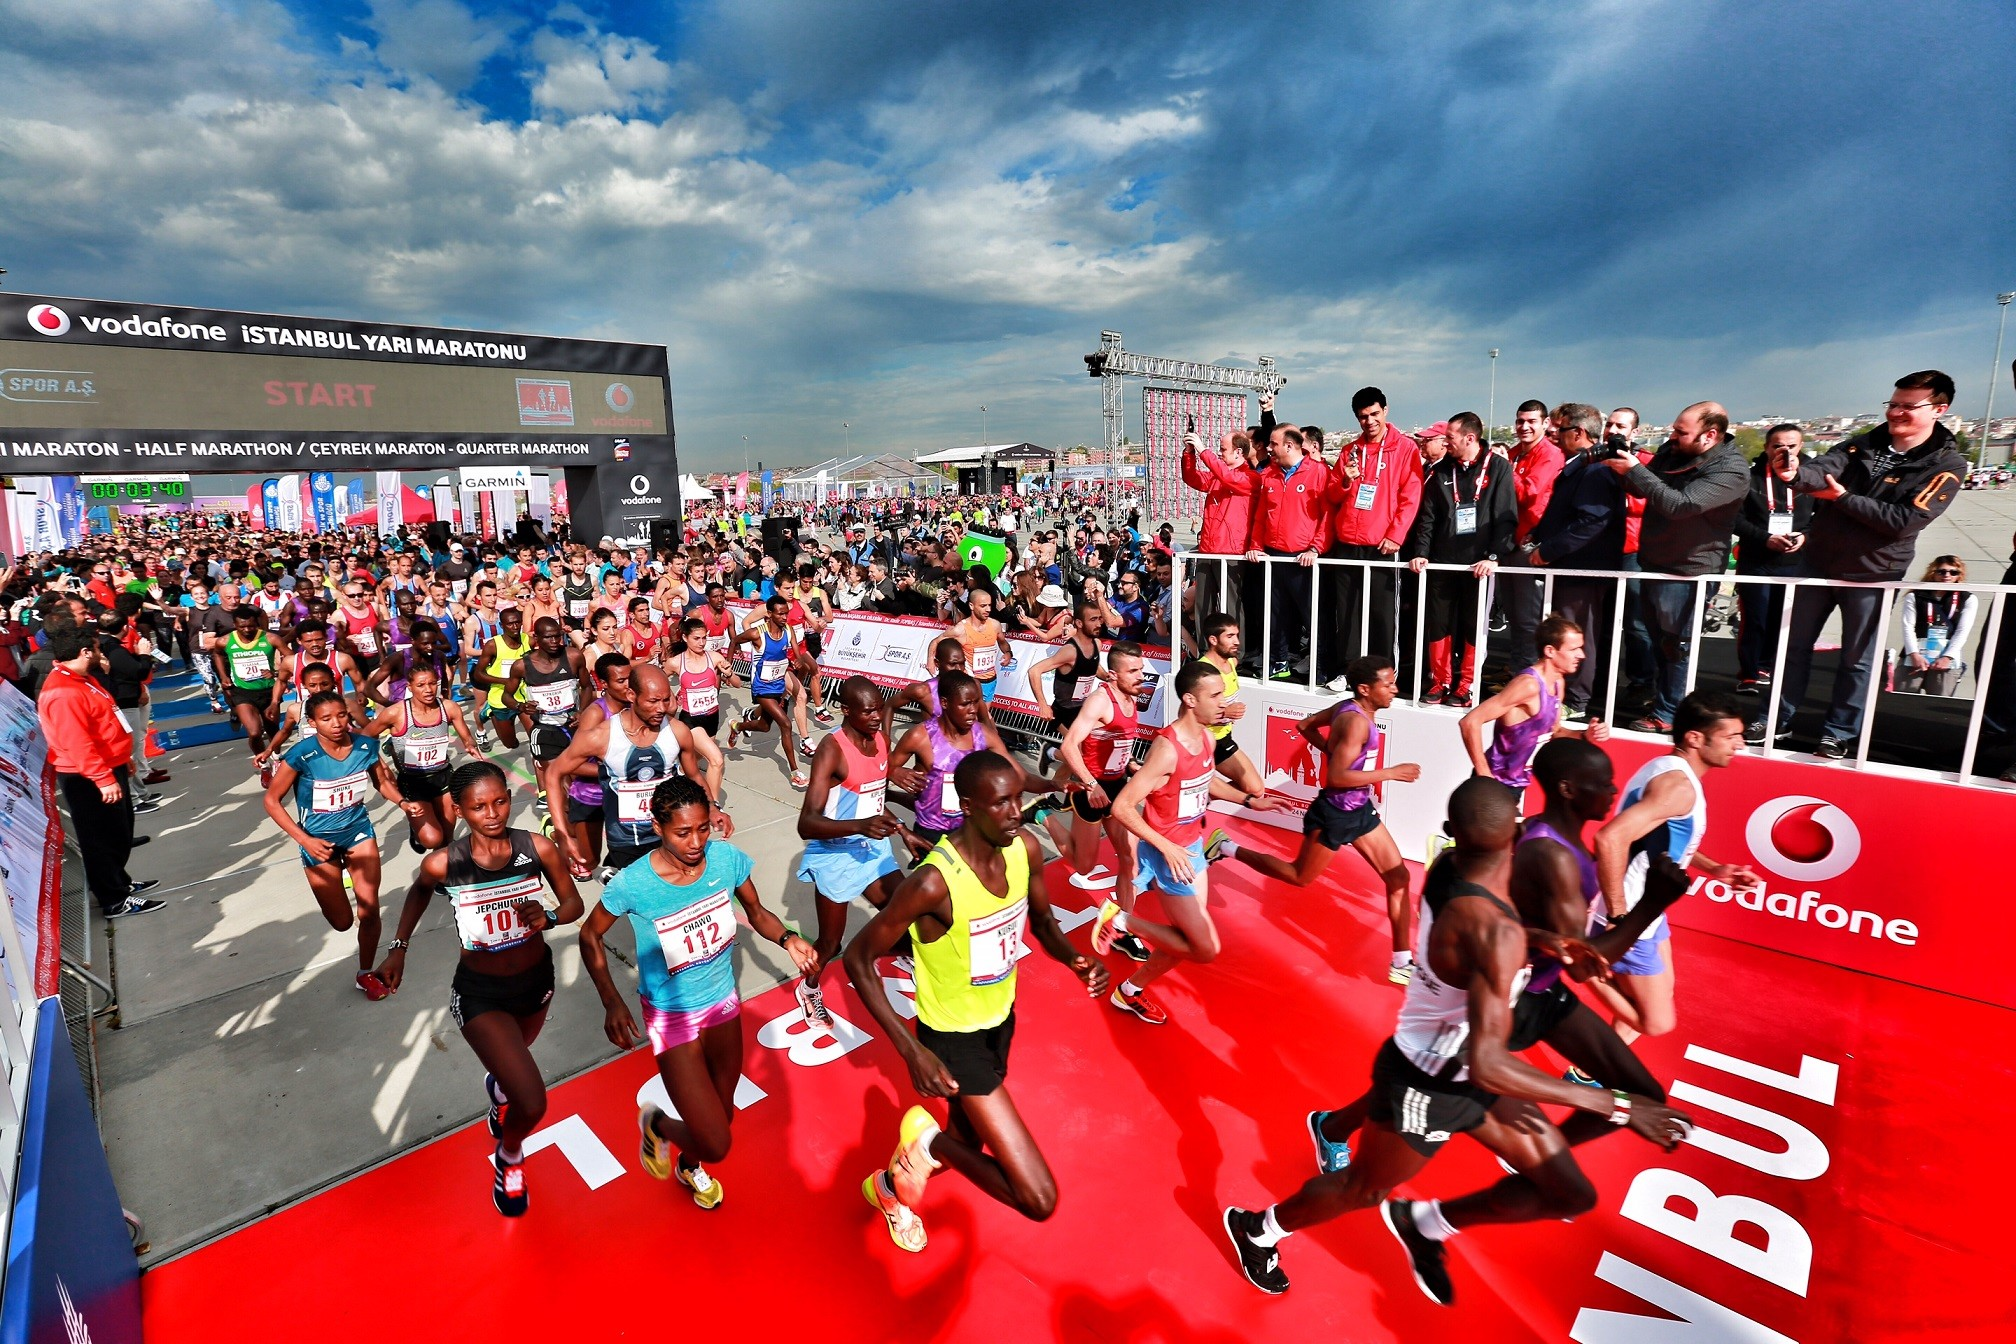 The Vodafone Istanbul Half Marathon, with the participation of 2,500 athletes, is set to be held on September 20.